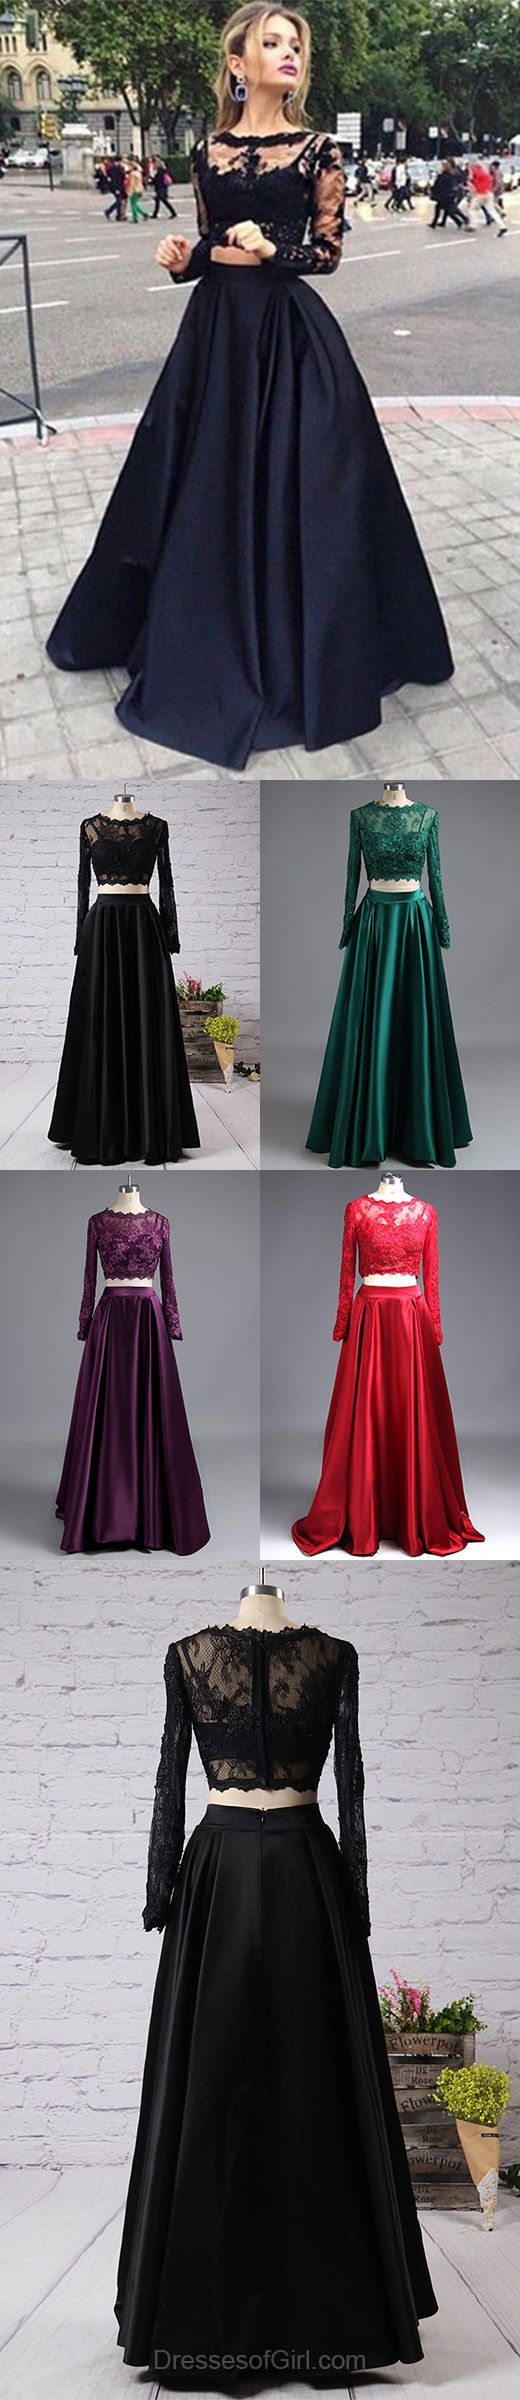 Two Piece Prom Dress, Long Prom Dresses, Satin Evening Dresses, Black Party Dresses, Princess Formal Dresses